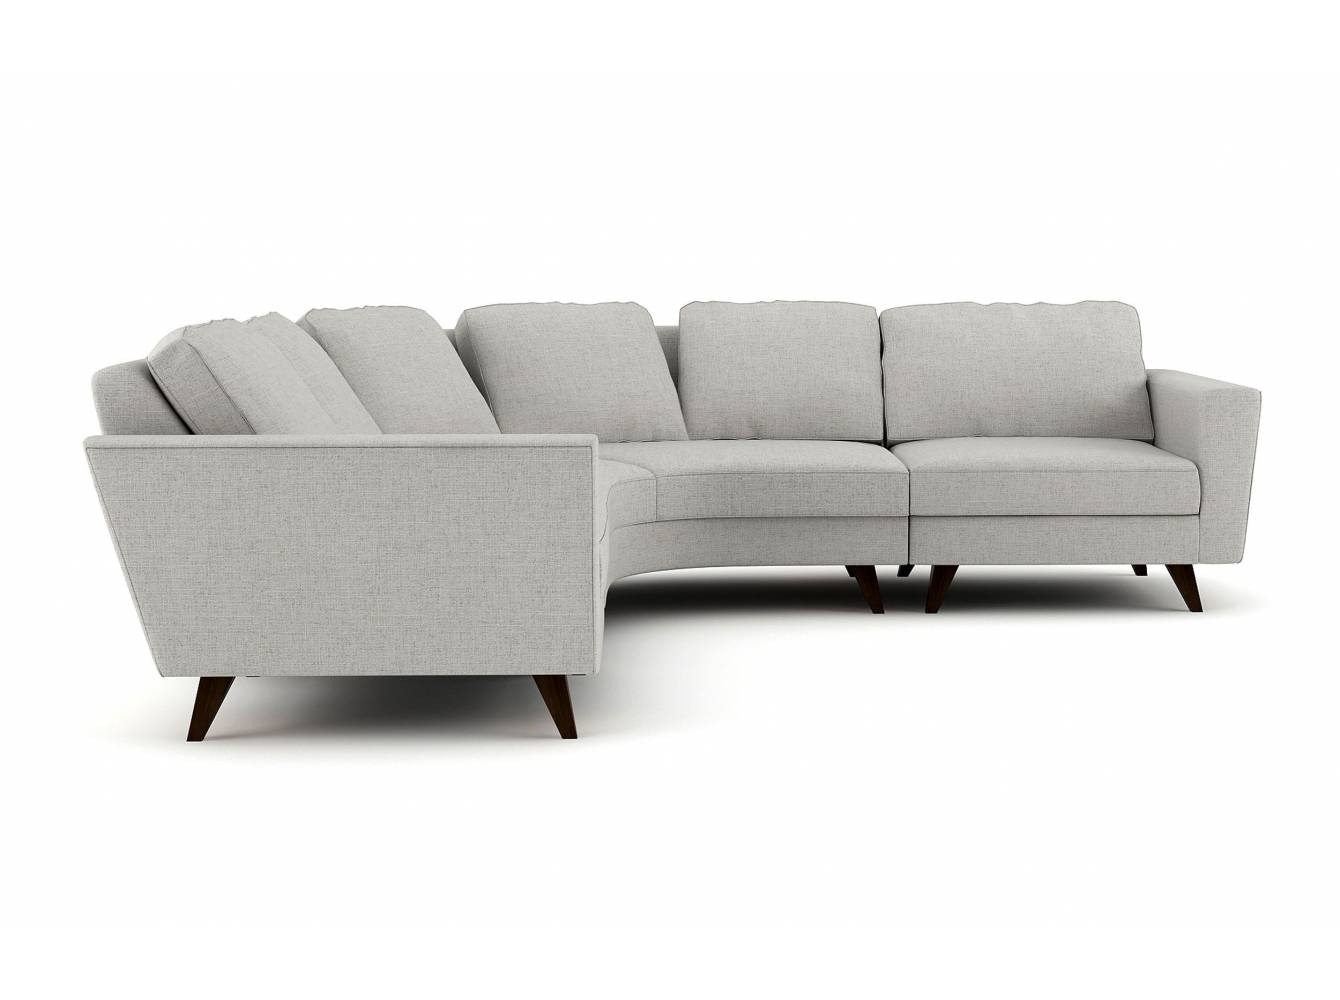 Pel Rounded Corner Sectional – Stem Throughout Rounded Corner Sectional Sofas (Image 6 of 10)